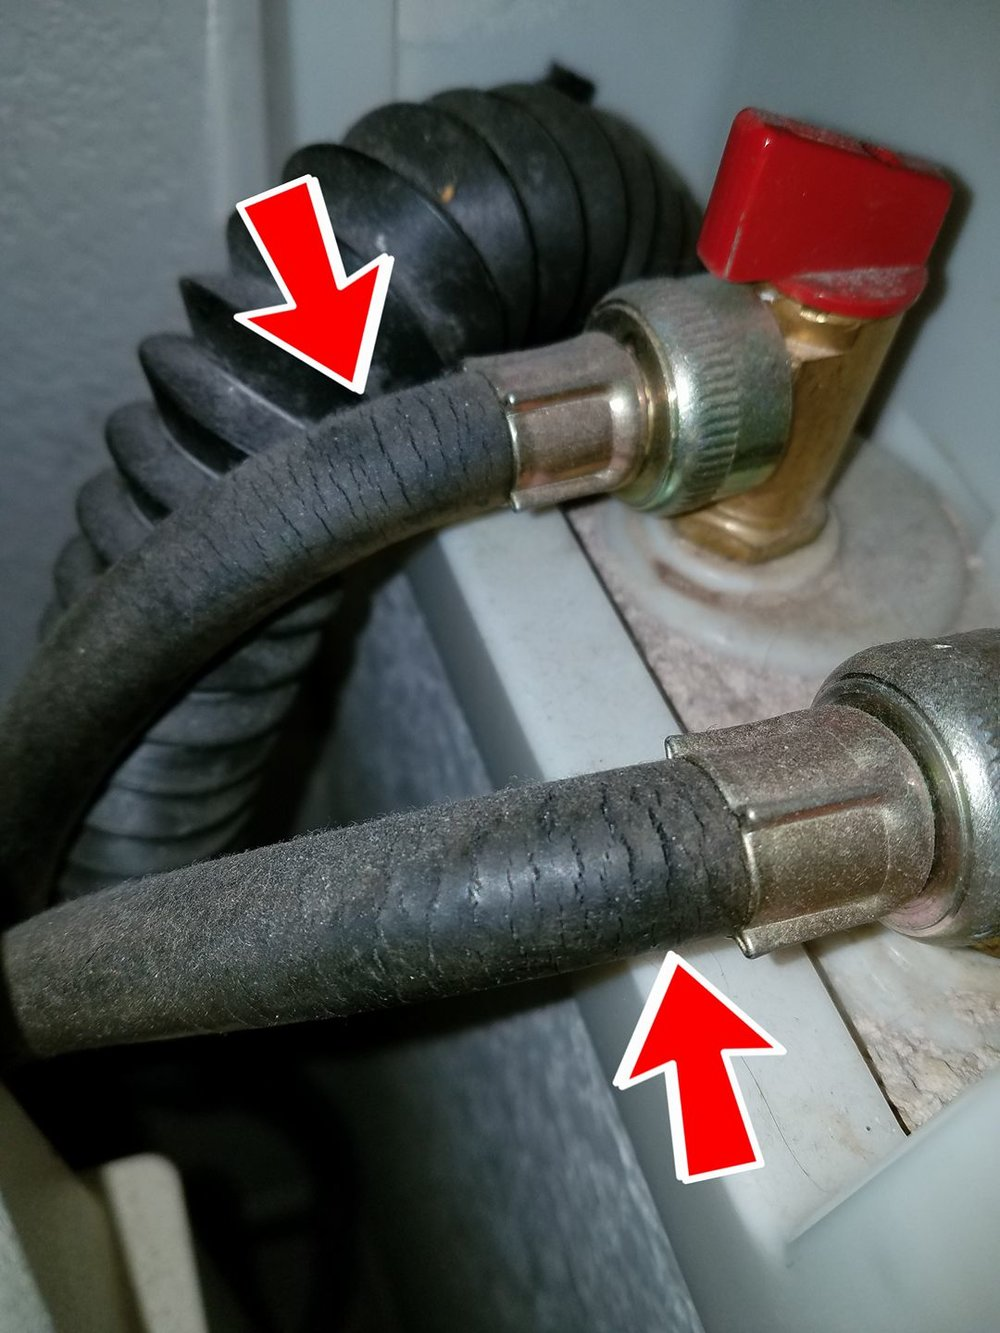 Cracked failing washer supply lines are a potential leak just waiting to happen - recommend replacing with new steel reinforced hoses. Have you looked at your washer hoses lately?